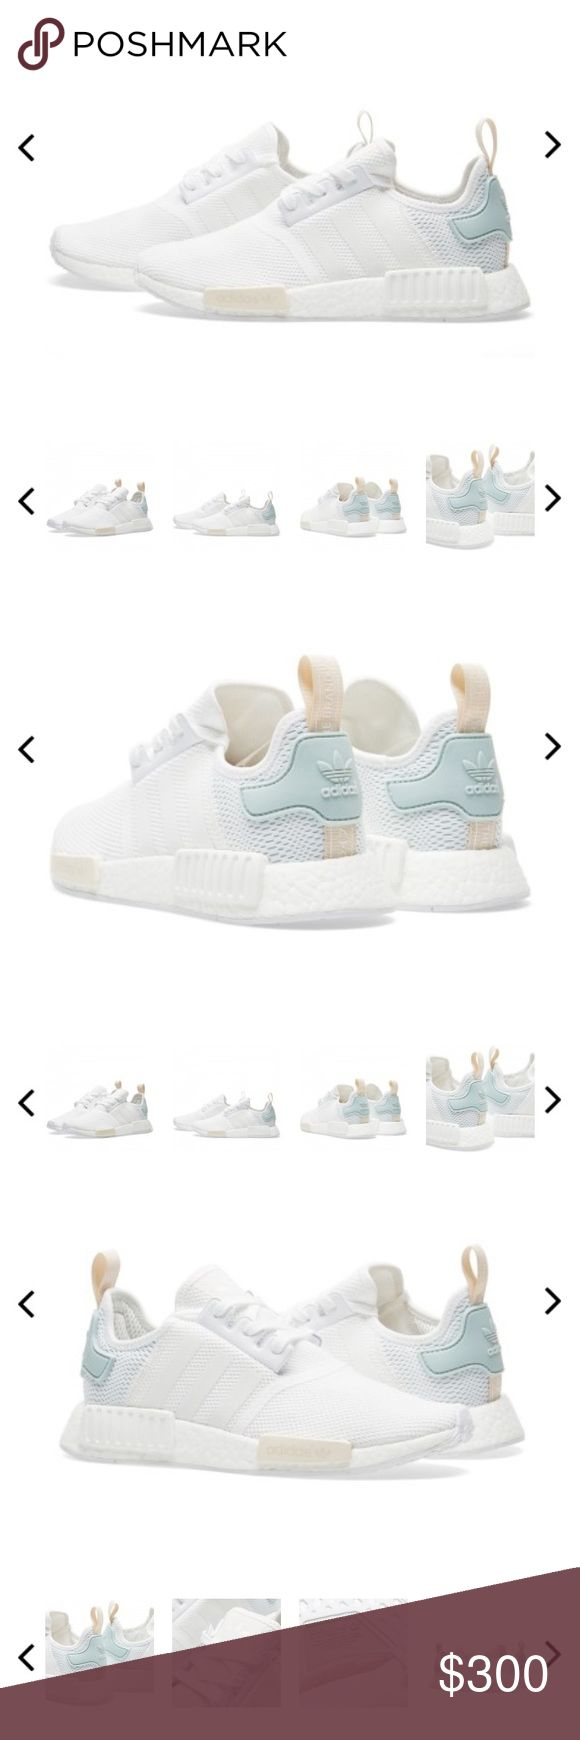 Adidas NMD white/blue Adidas NMD brand New in the box. These were a limited release can't find them anywhere in stores. Women's Size 8 true to size Adidas Shoes Sneakers